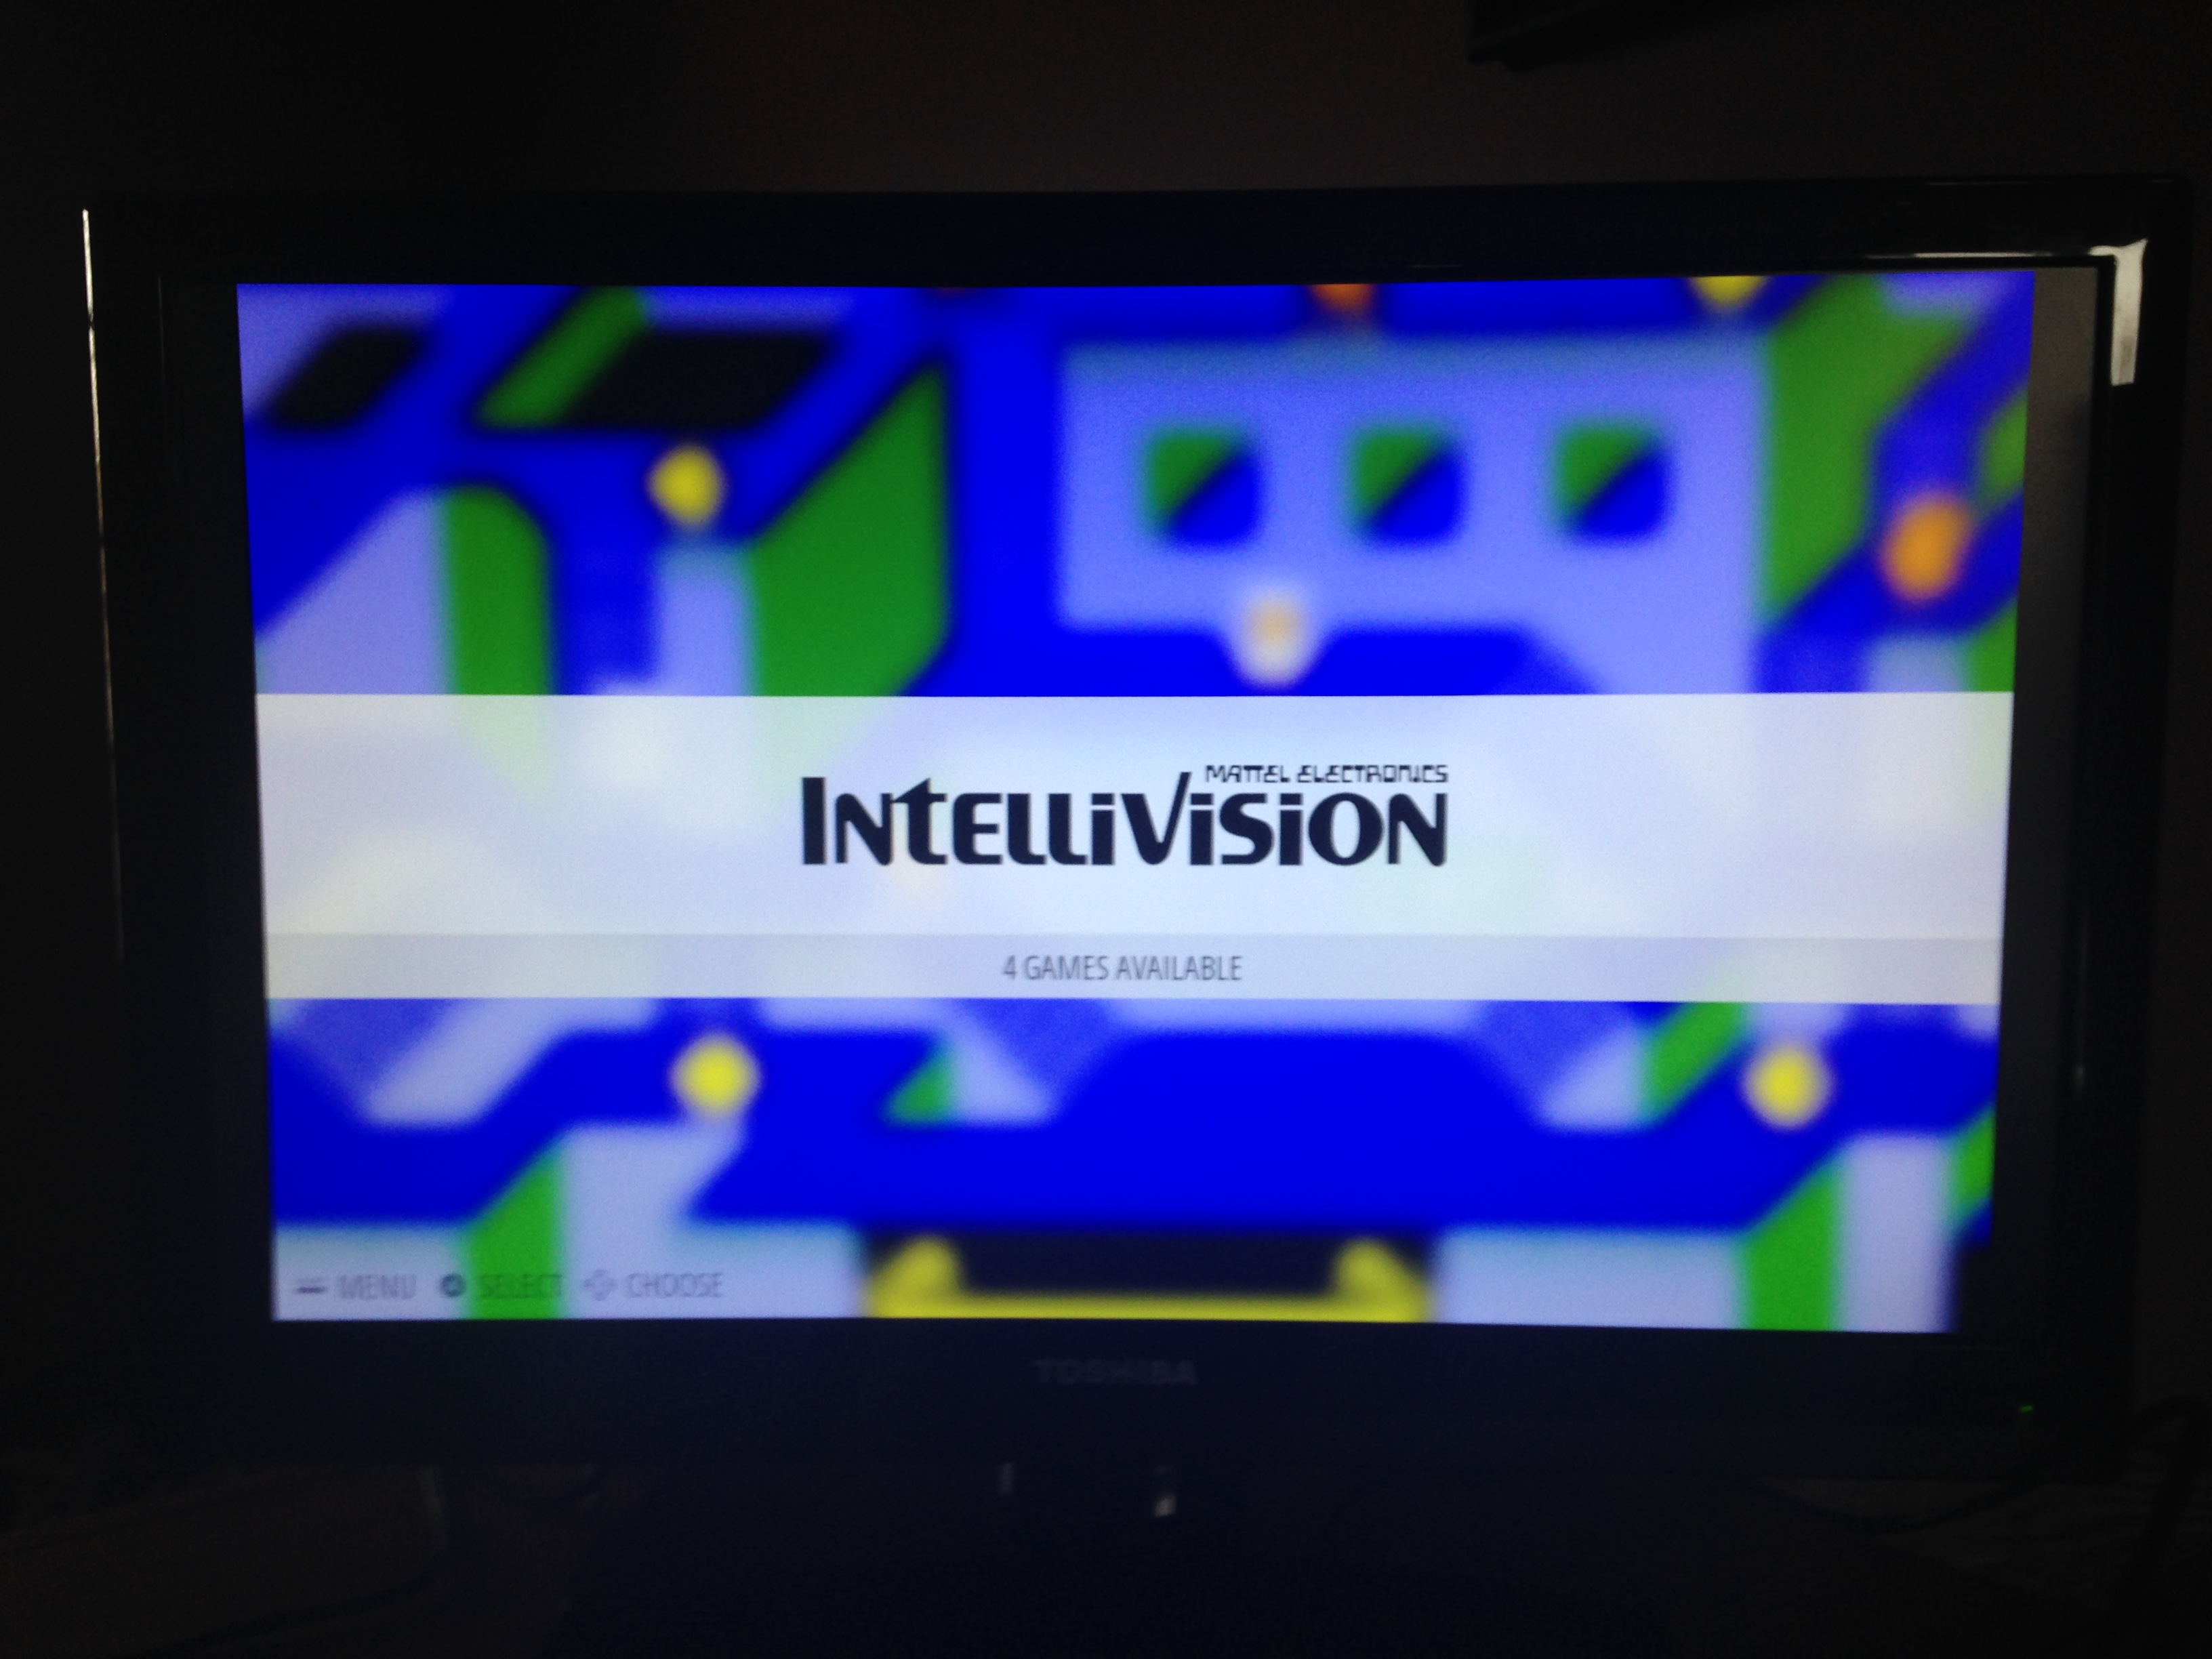 The Ultimate Intellivision Flashback - Intellivision